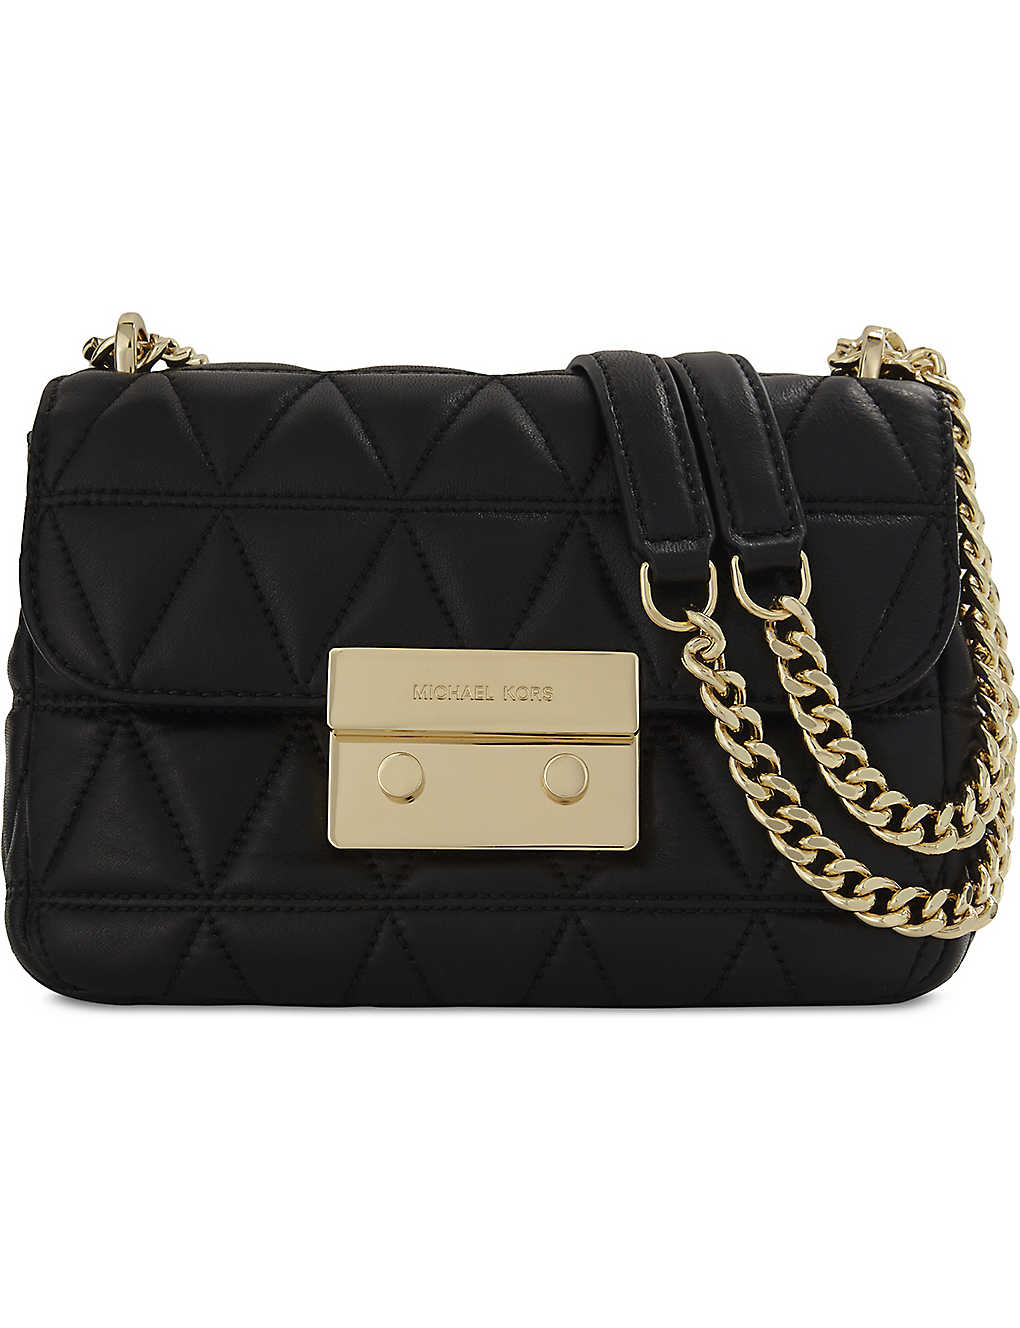 5776b5cfa551 MICHAEL MICHAEL KORS - Sloan small quilted leather cross-body bag ...